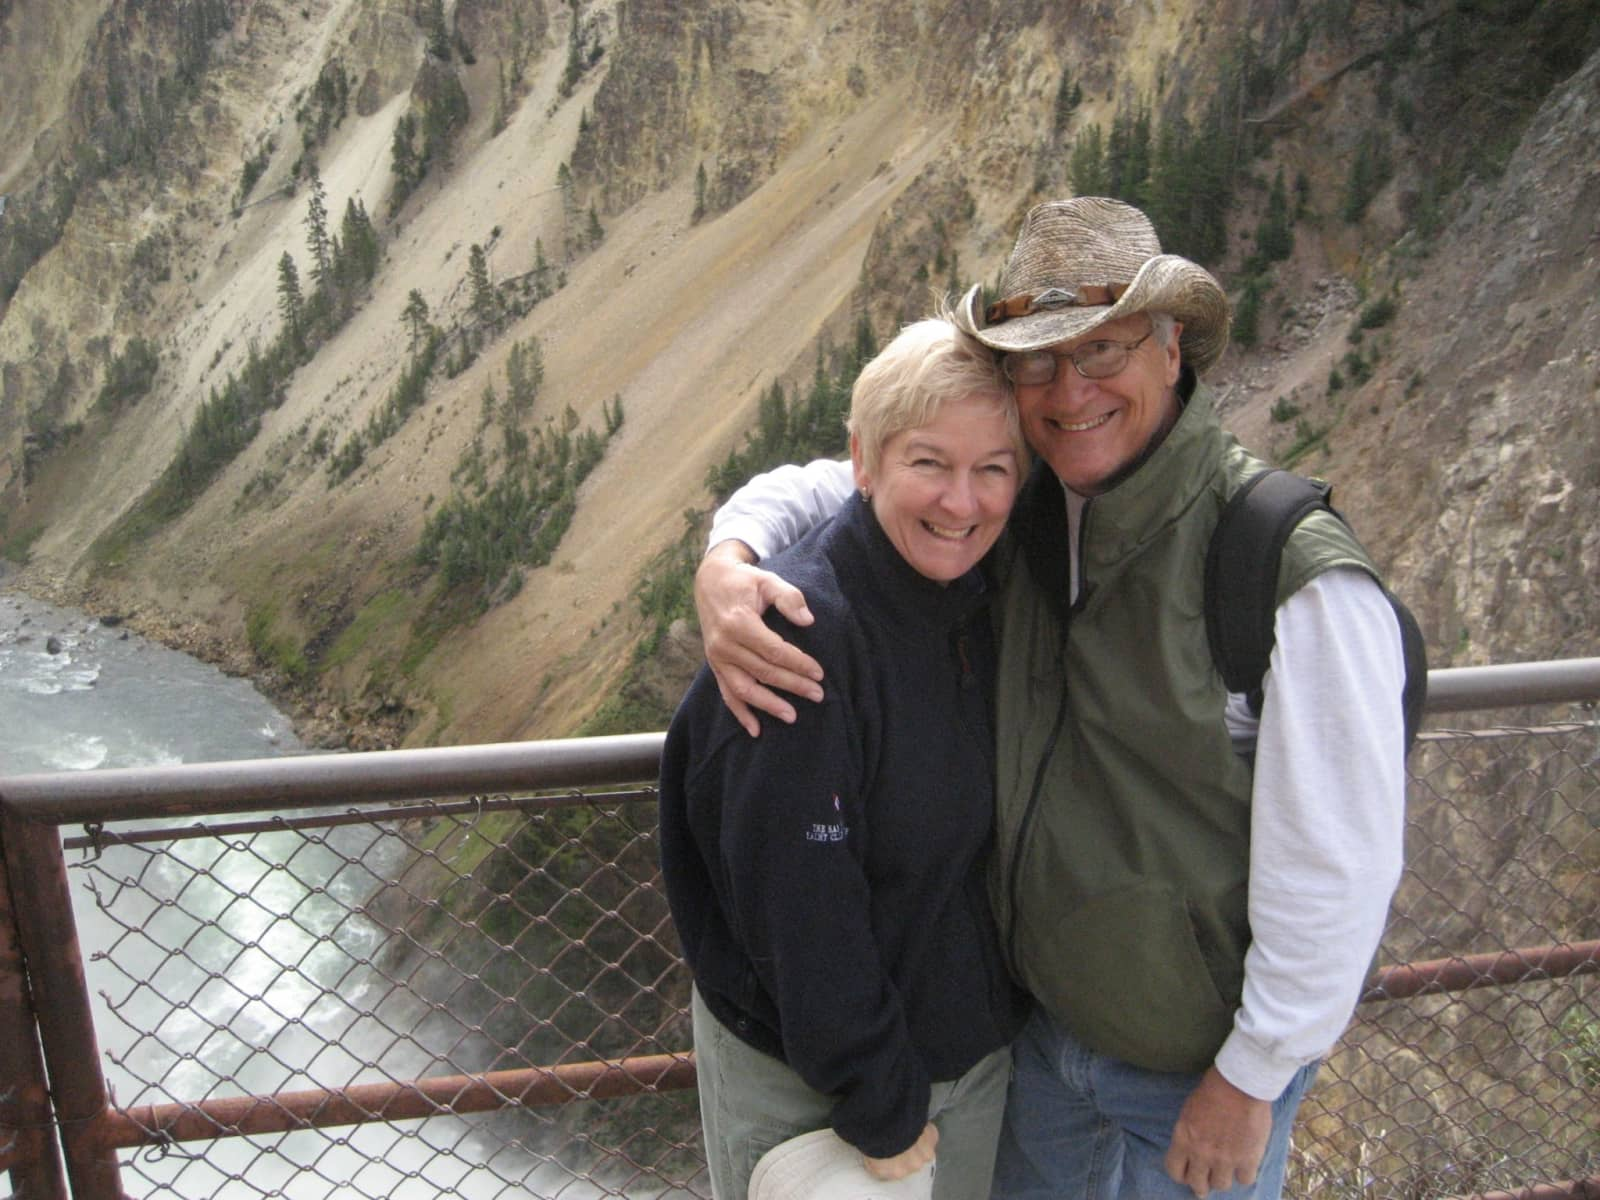 Leanne & Andy from Dadeville, Alabama, United States